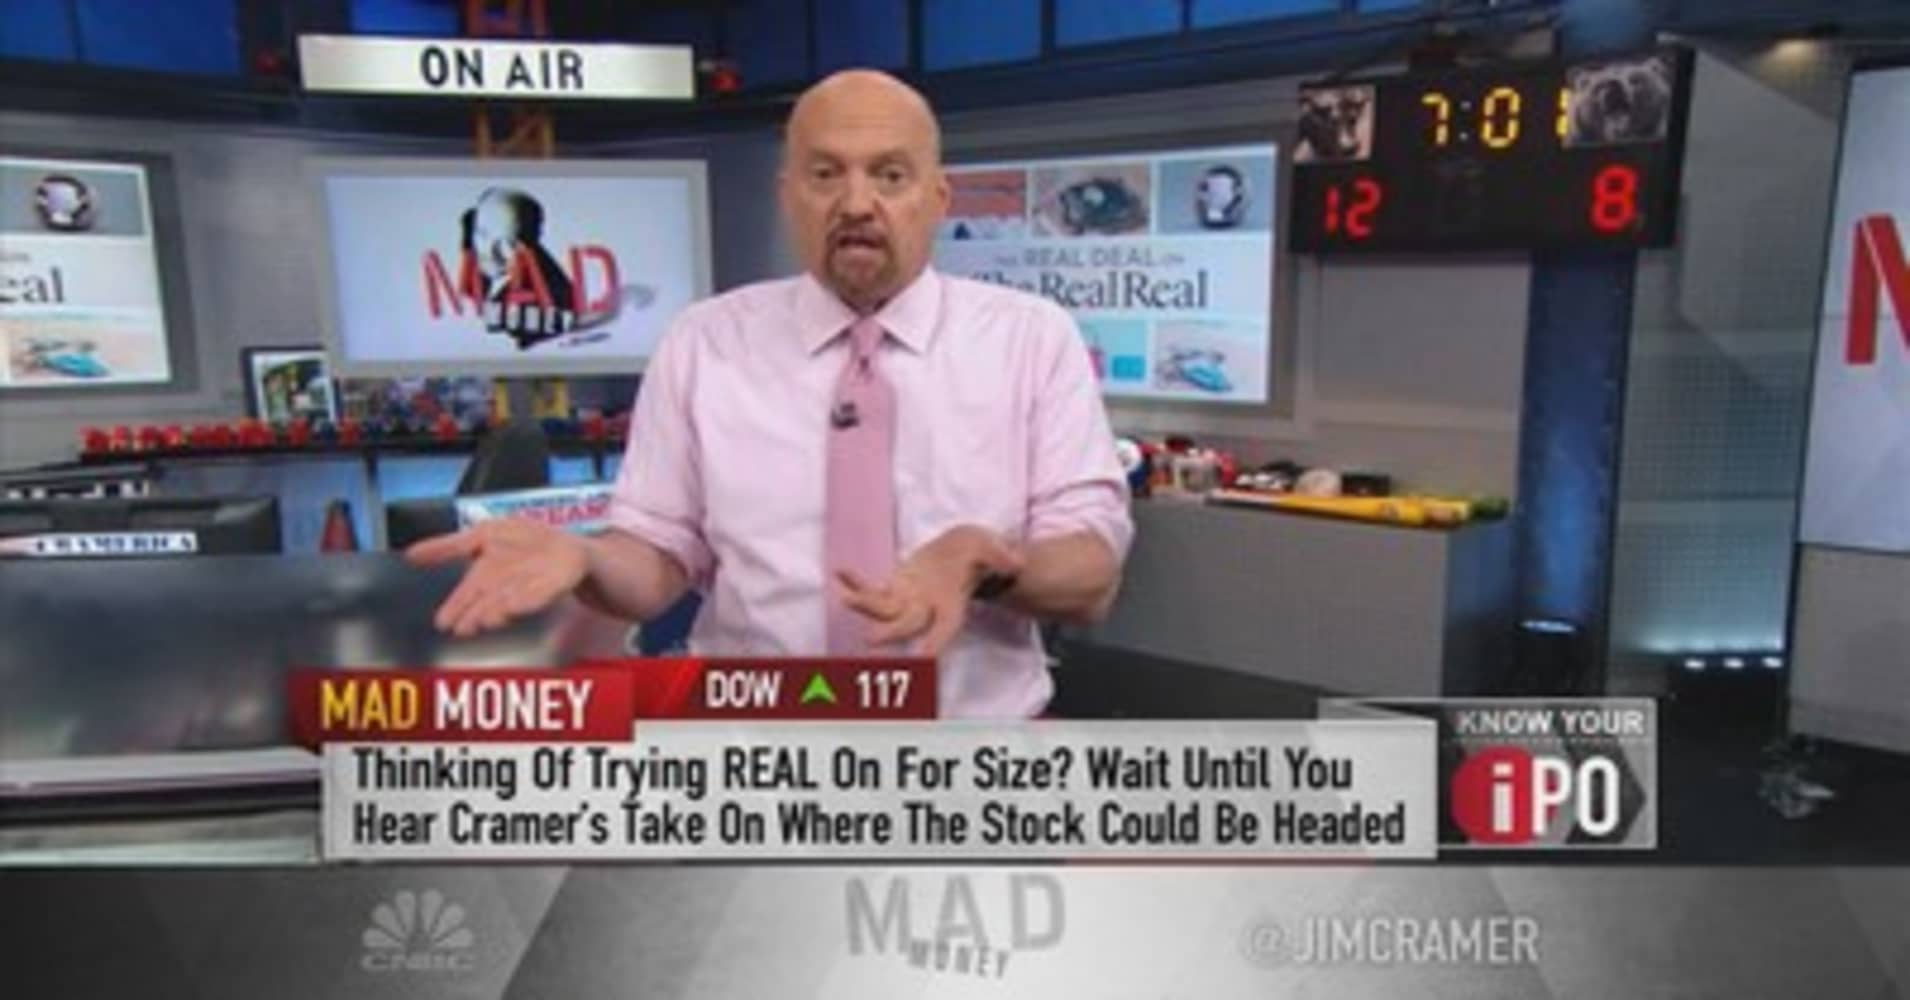 RealReal's IPO and when Jim Cramer says it's OK to pull the trigger